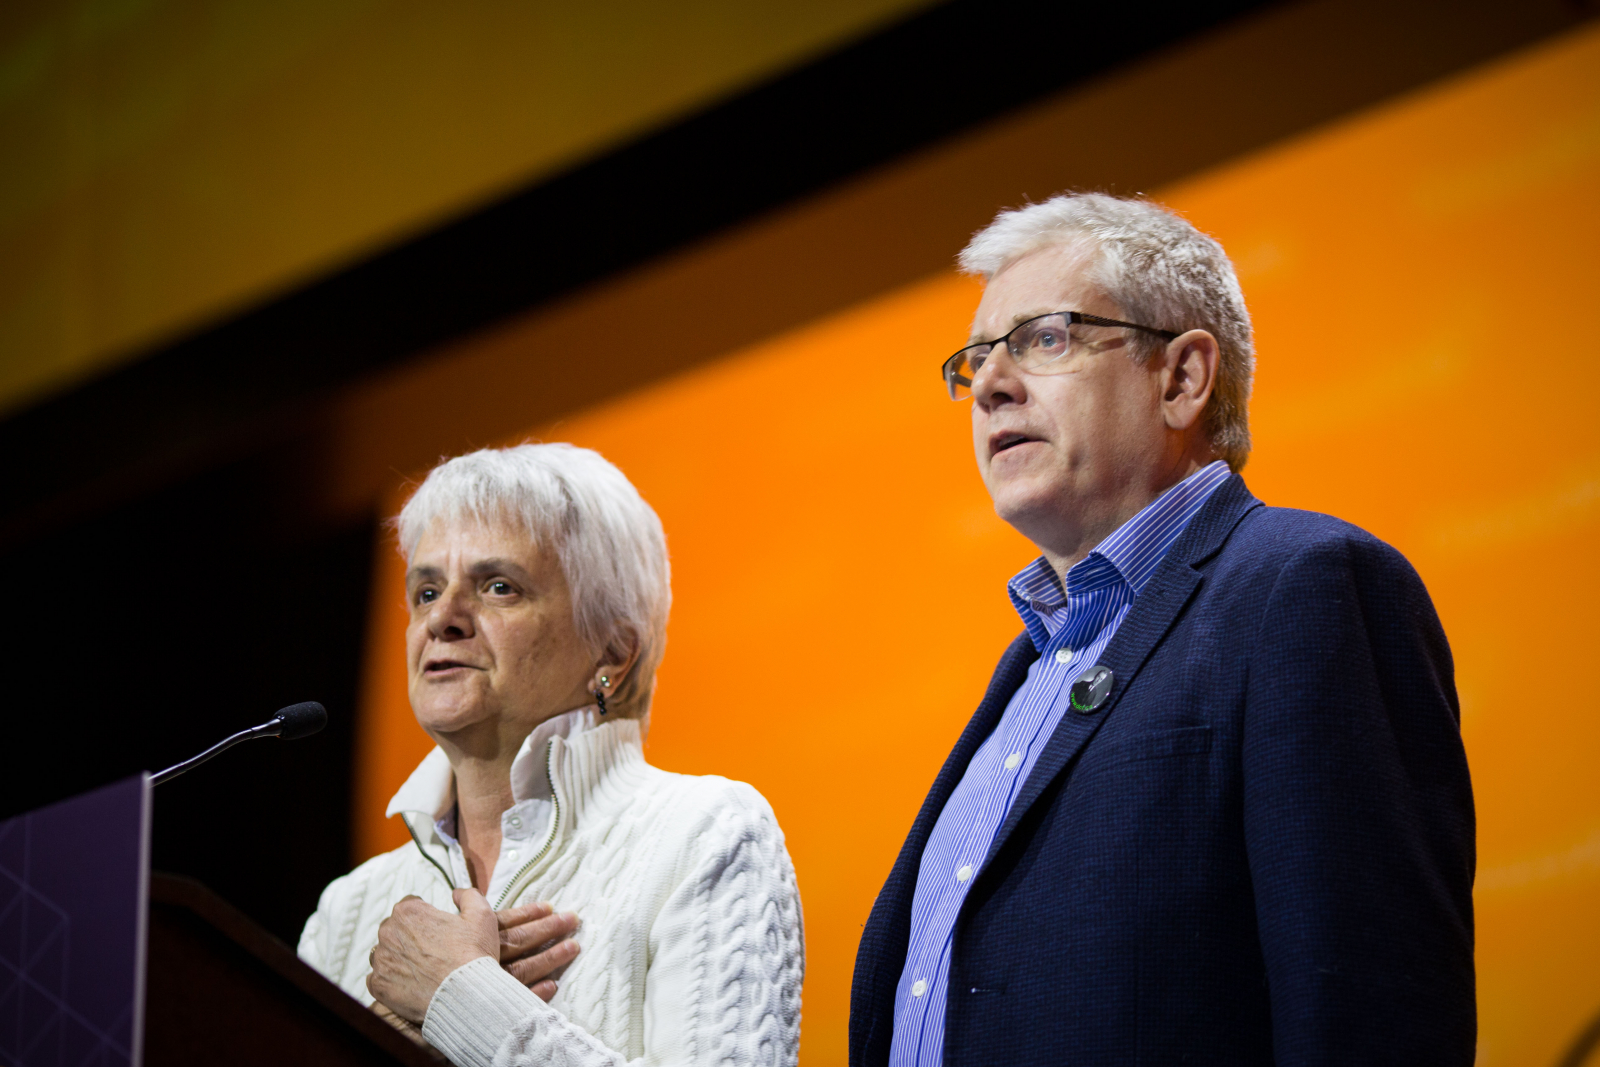 NDP MPs Charlie Angus and Helene Laverdiere speak to NDP delegates about Paul Dewar's brain cancer diagnosis in Ottawa on Feb. 17, 2018. Photo by Alex Tétreault